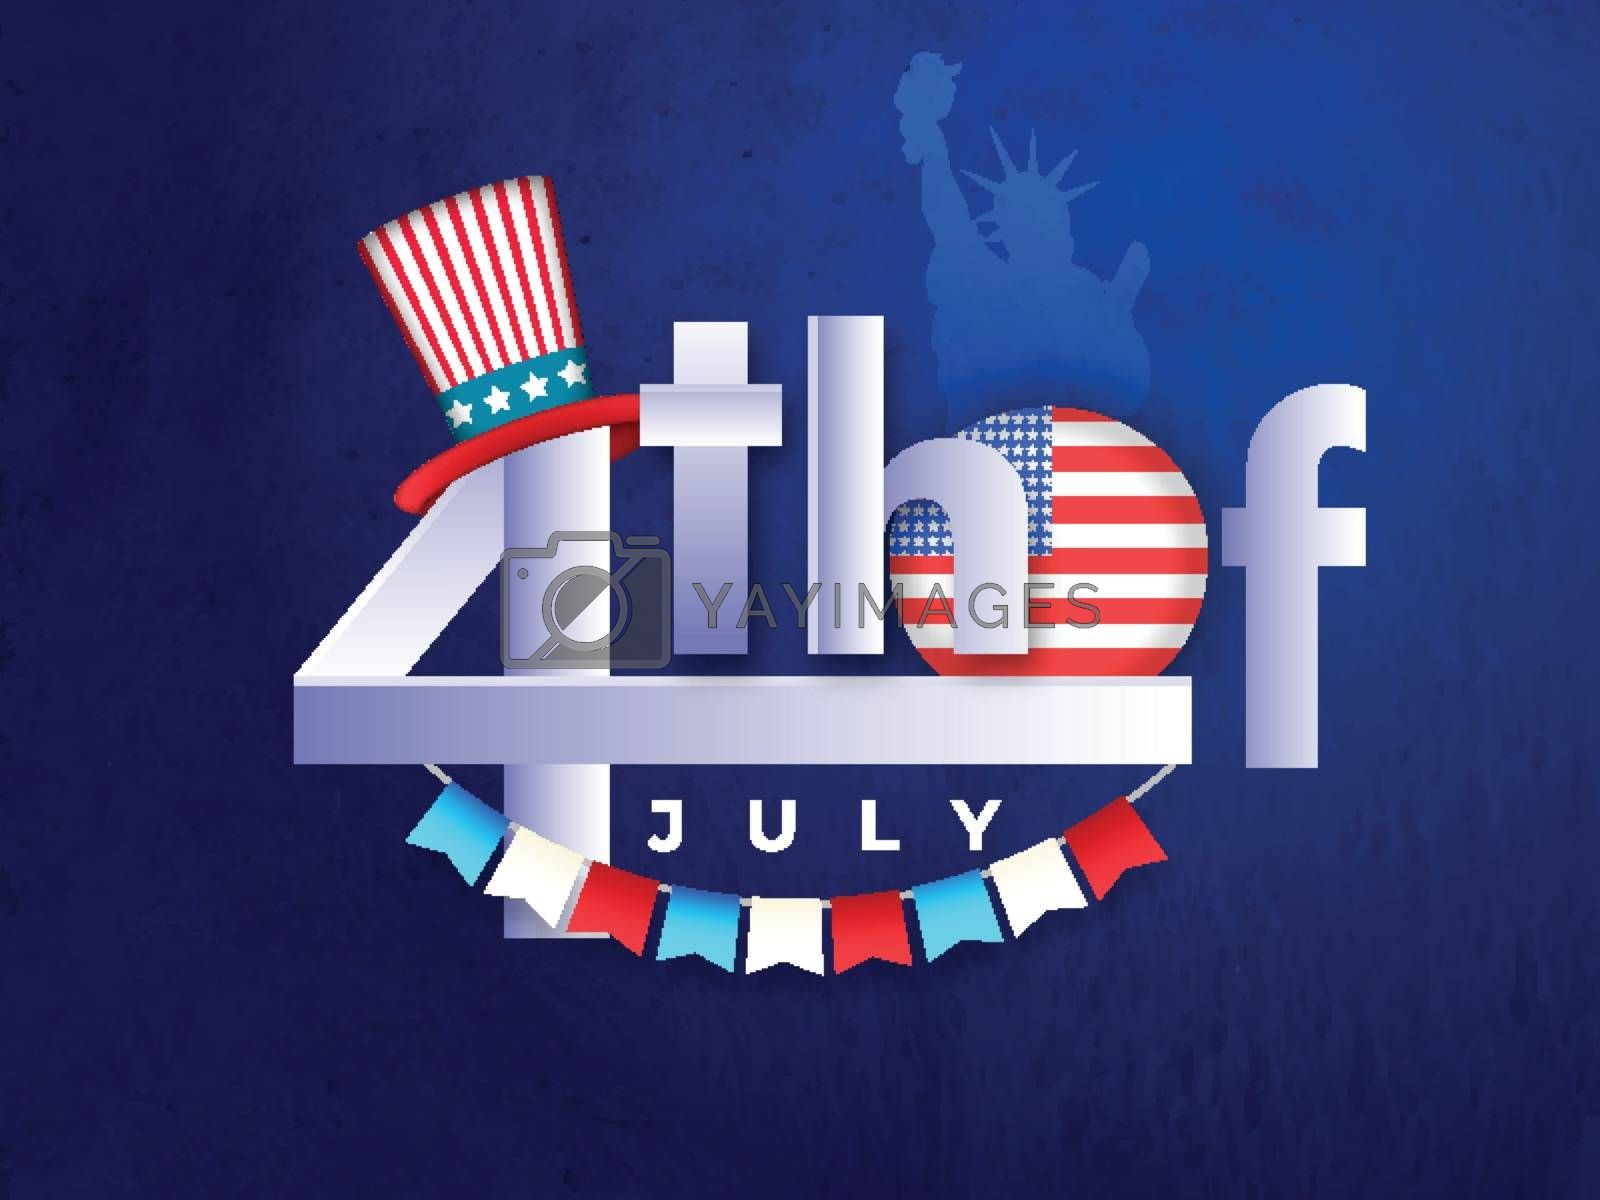 Stylish text 4th Of July with American badge and uncle sam hat on blue background for Independence Day celebration.